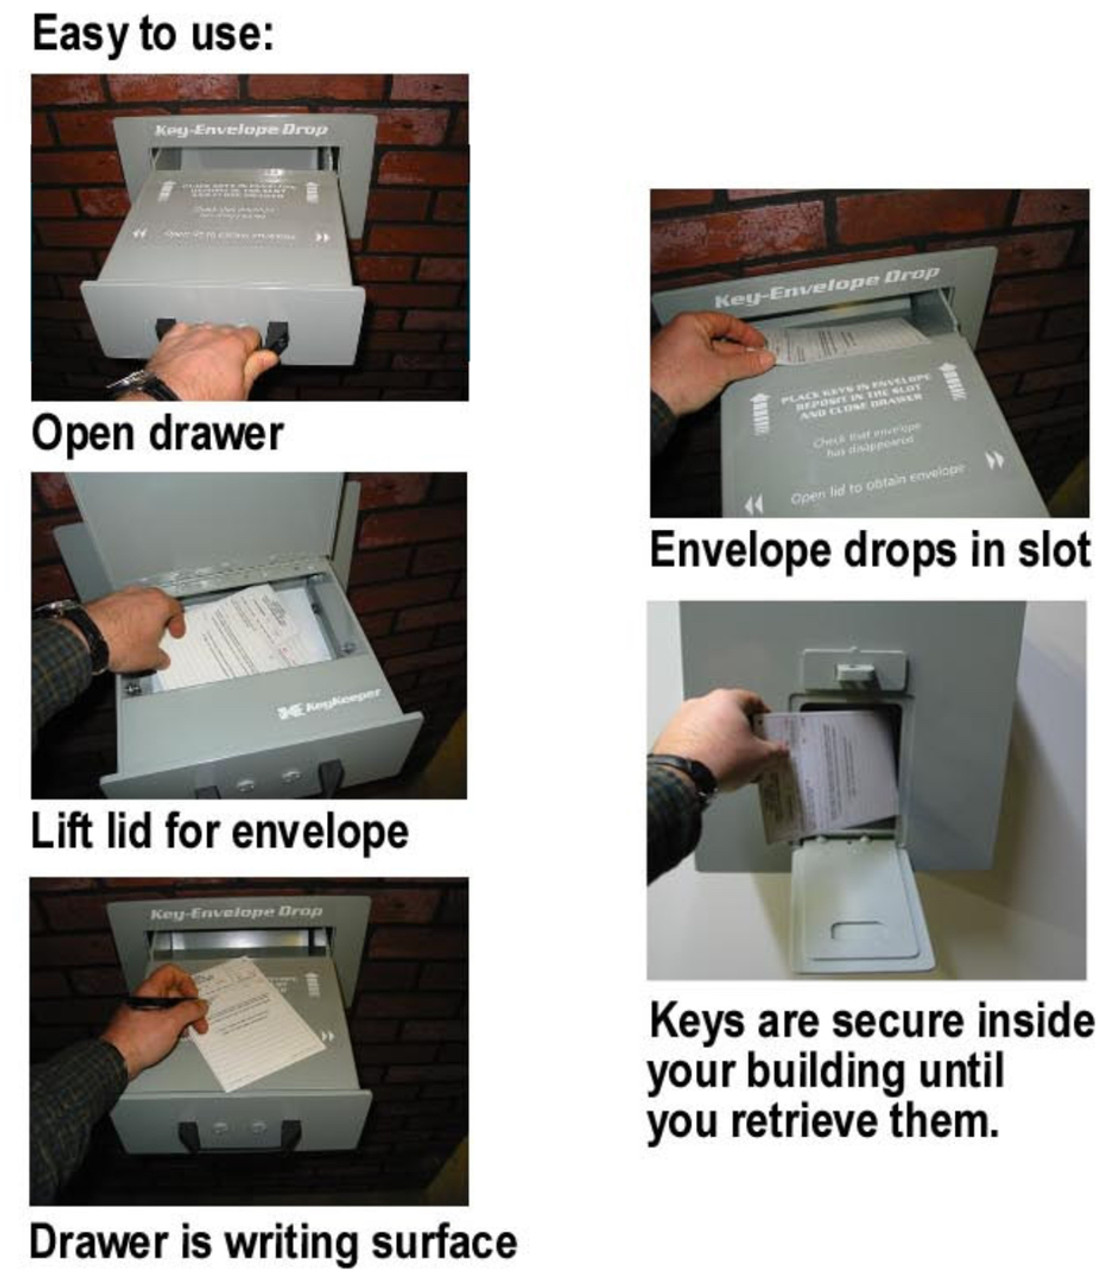 Through the Wall High Security Key / Payment Drop Box  how to use